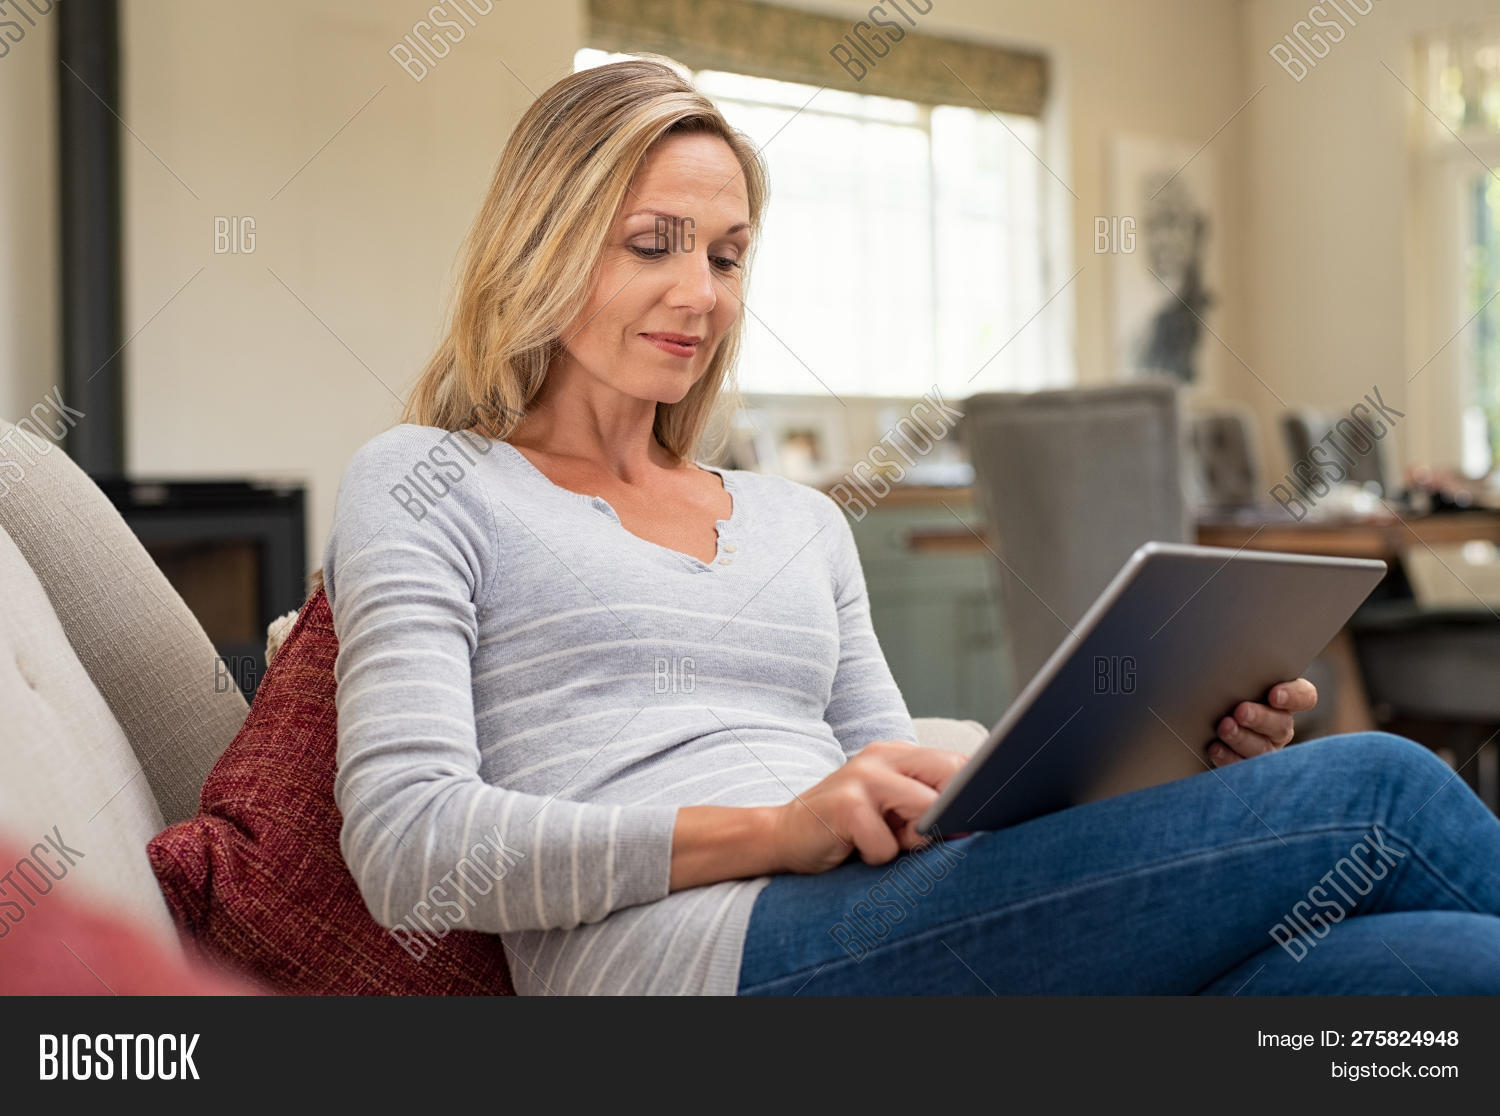 40s,beautiful,blonde hair,browsing,casual,caucasian,checking account,checking email,cheerful,communication,computer,connection,connectivity,digital,digital tablet,ebook,entertainment,happy,holding,holding ipad,home,indoors,internet,laptop,leisure,looking,mature,media,mid,mid adult woman,middle aged woman,people,pretty,read,relax,relaxing at home,sitting,sitting on couch,smiling,social,sofa,tablet,technology,using,using laptop,using tablet,watching,wifi,wireless,woman